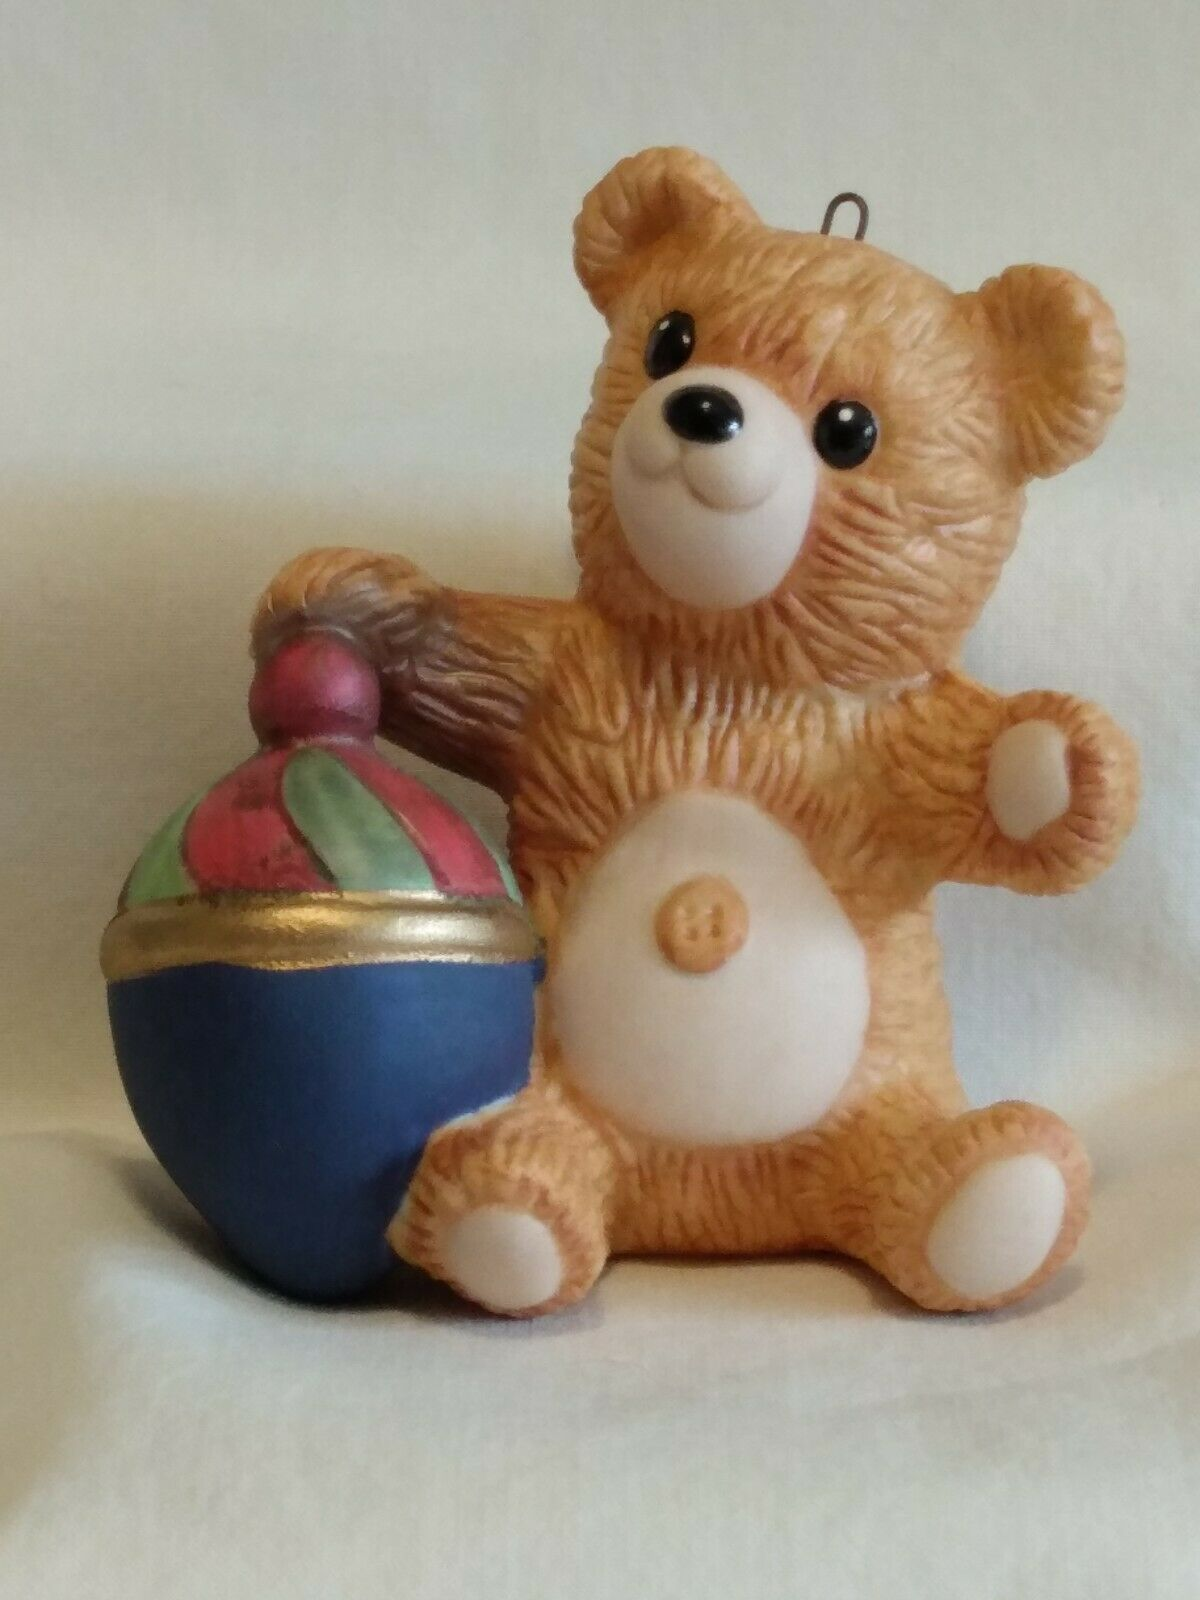 1983 Porcelain Bear #1 - Cinnamon Teddy